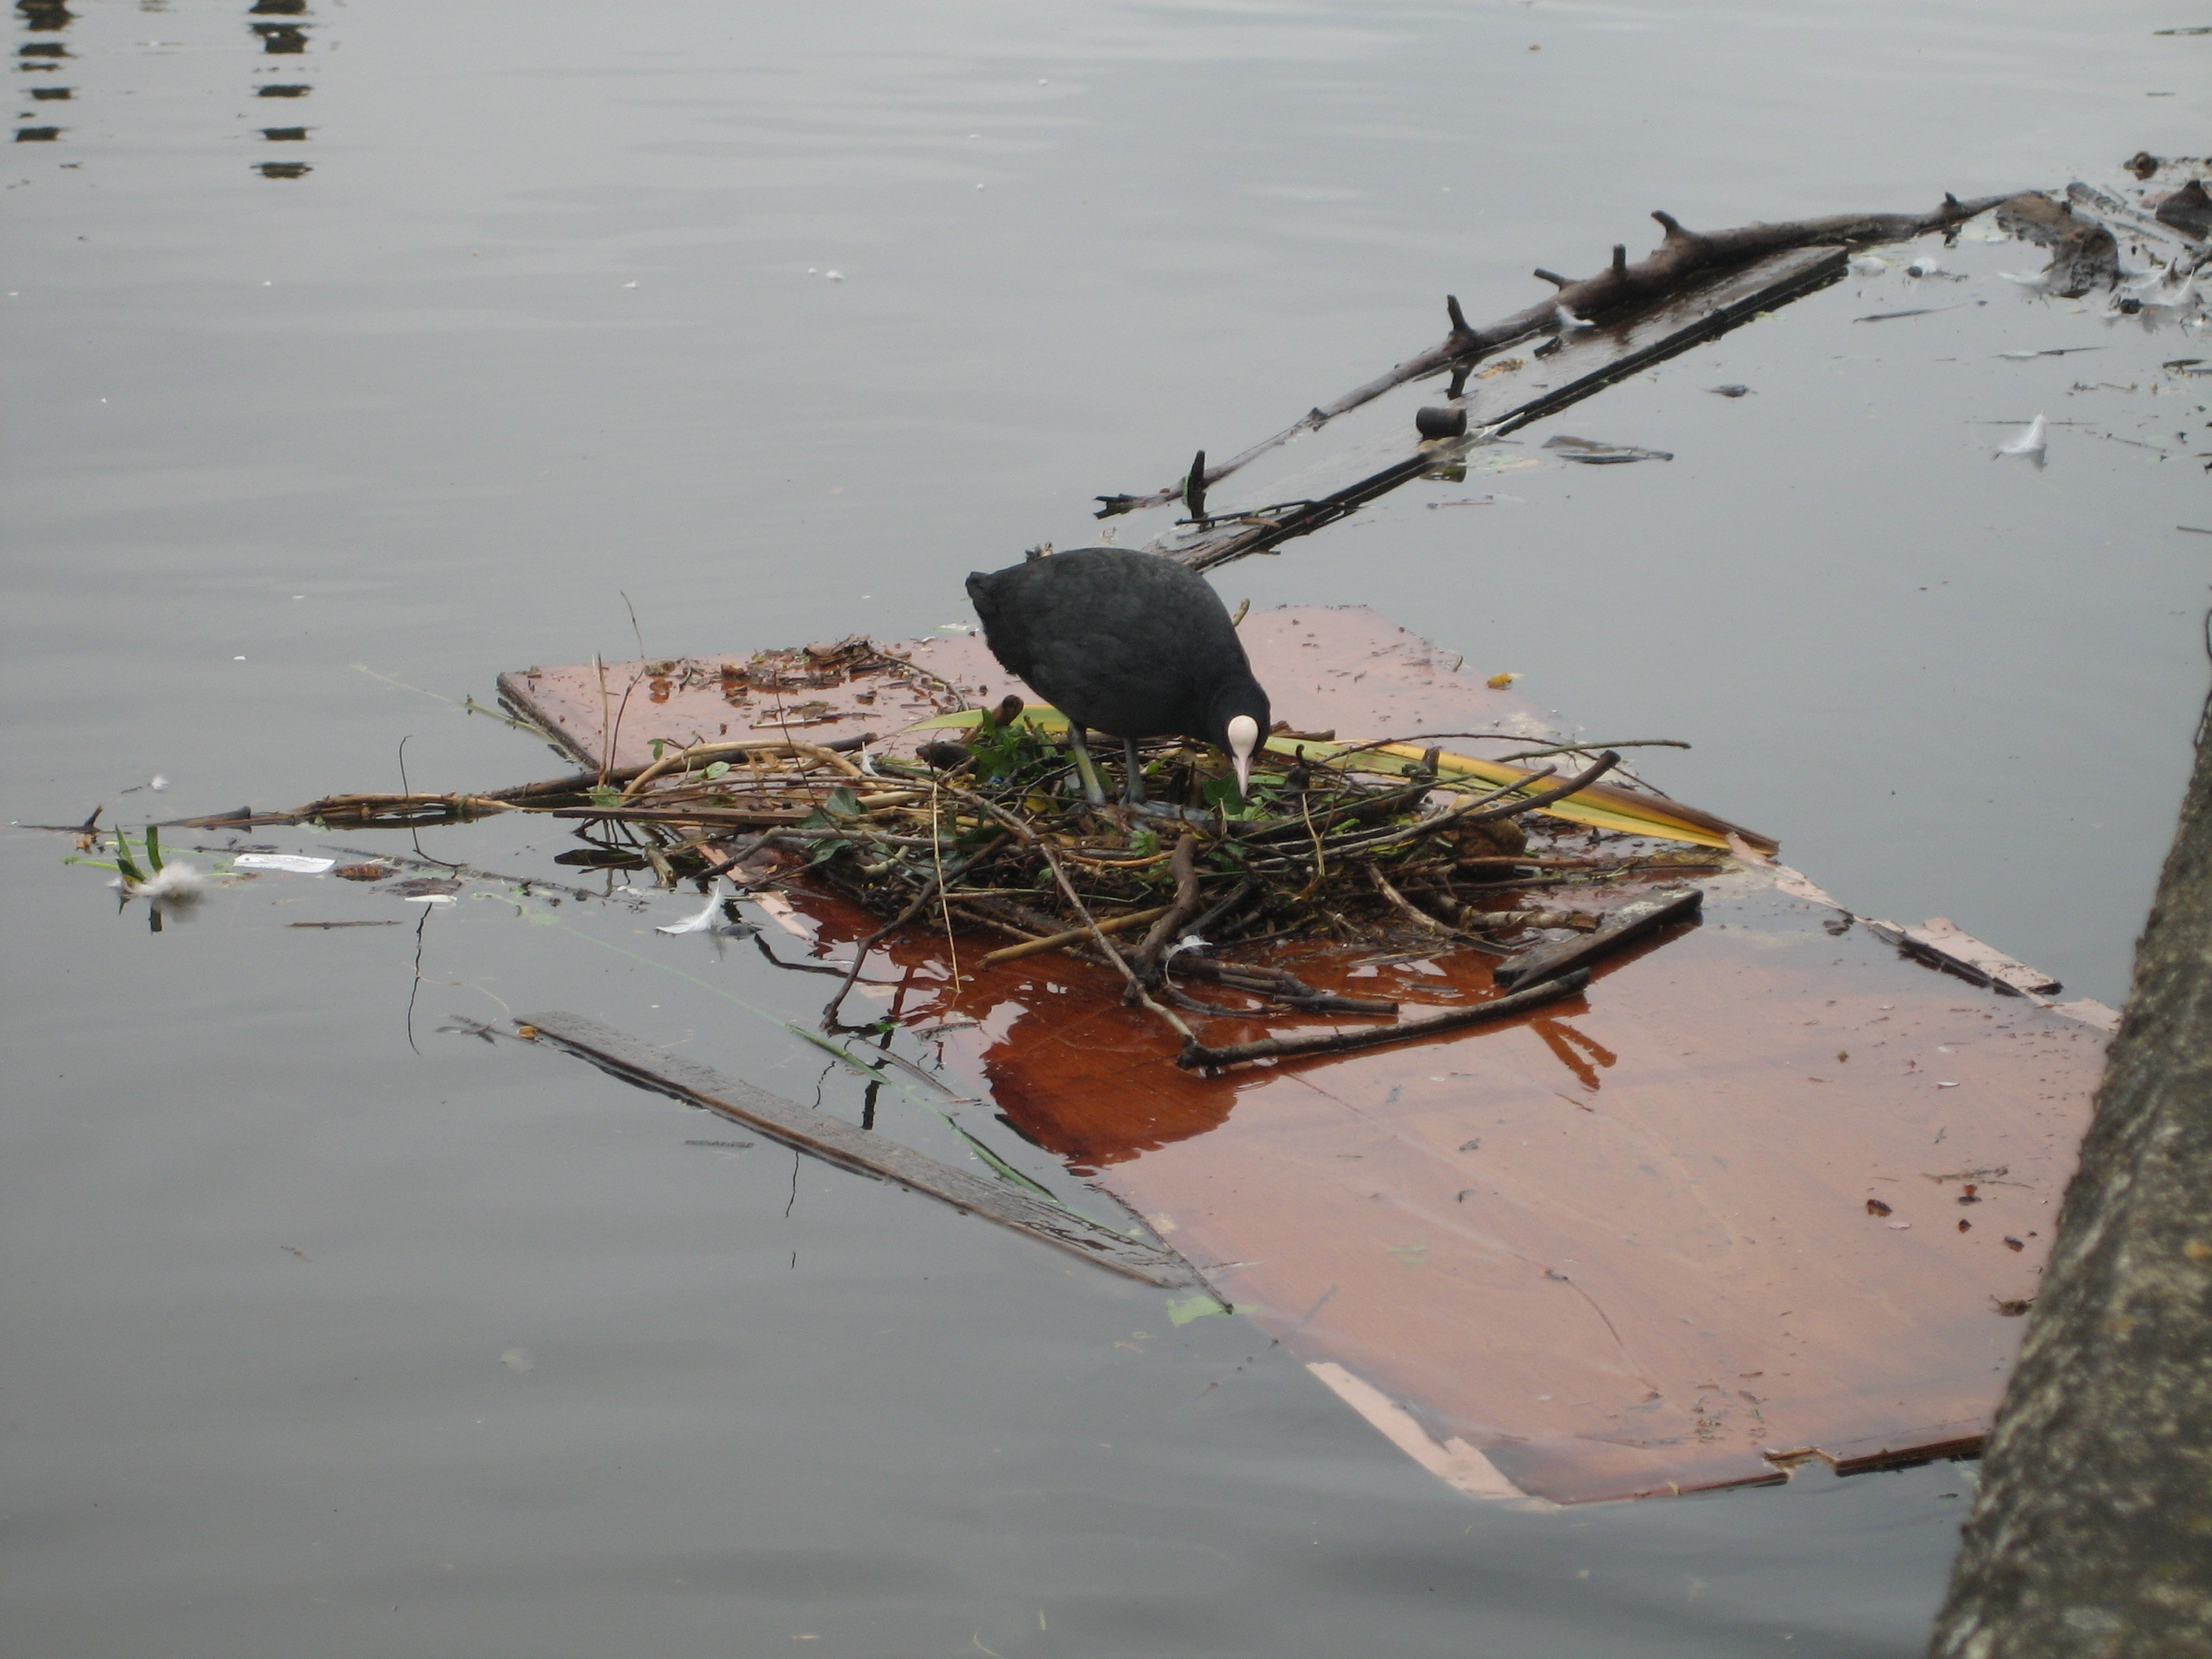 ... a nest on an old boat cabin door which was floating downstream. It didnu0027t last - Turku0027s boatmen took the door out of the water before it did any damage. & Birds on the Thames at Kingston - Where to watch wildlife - Wildlife ...